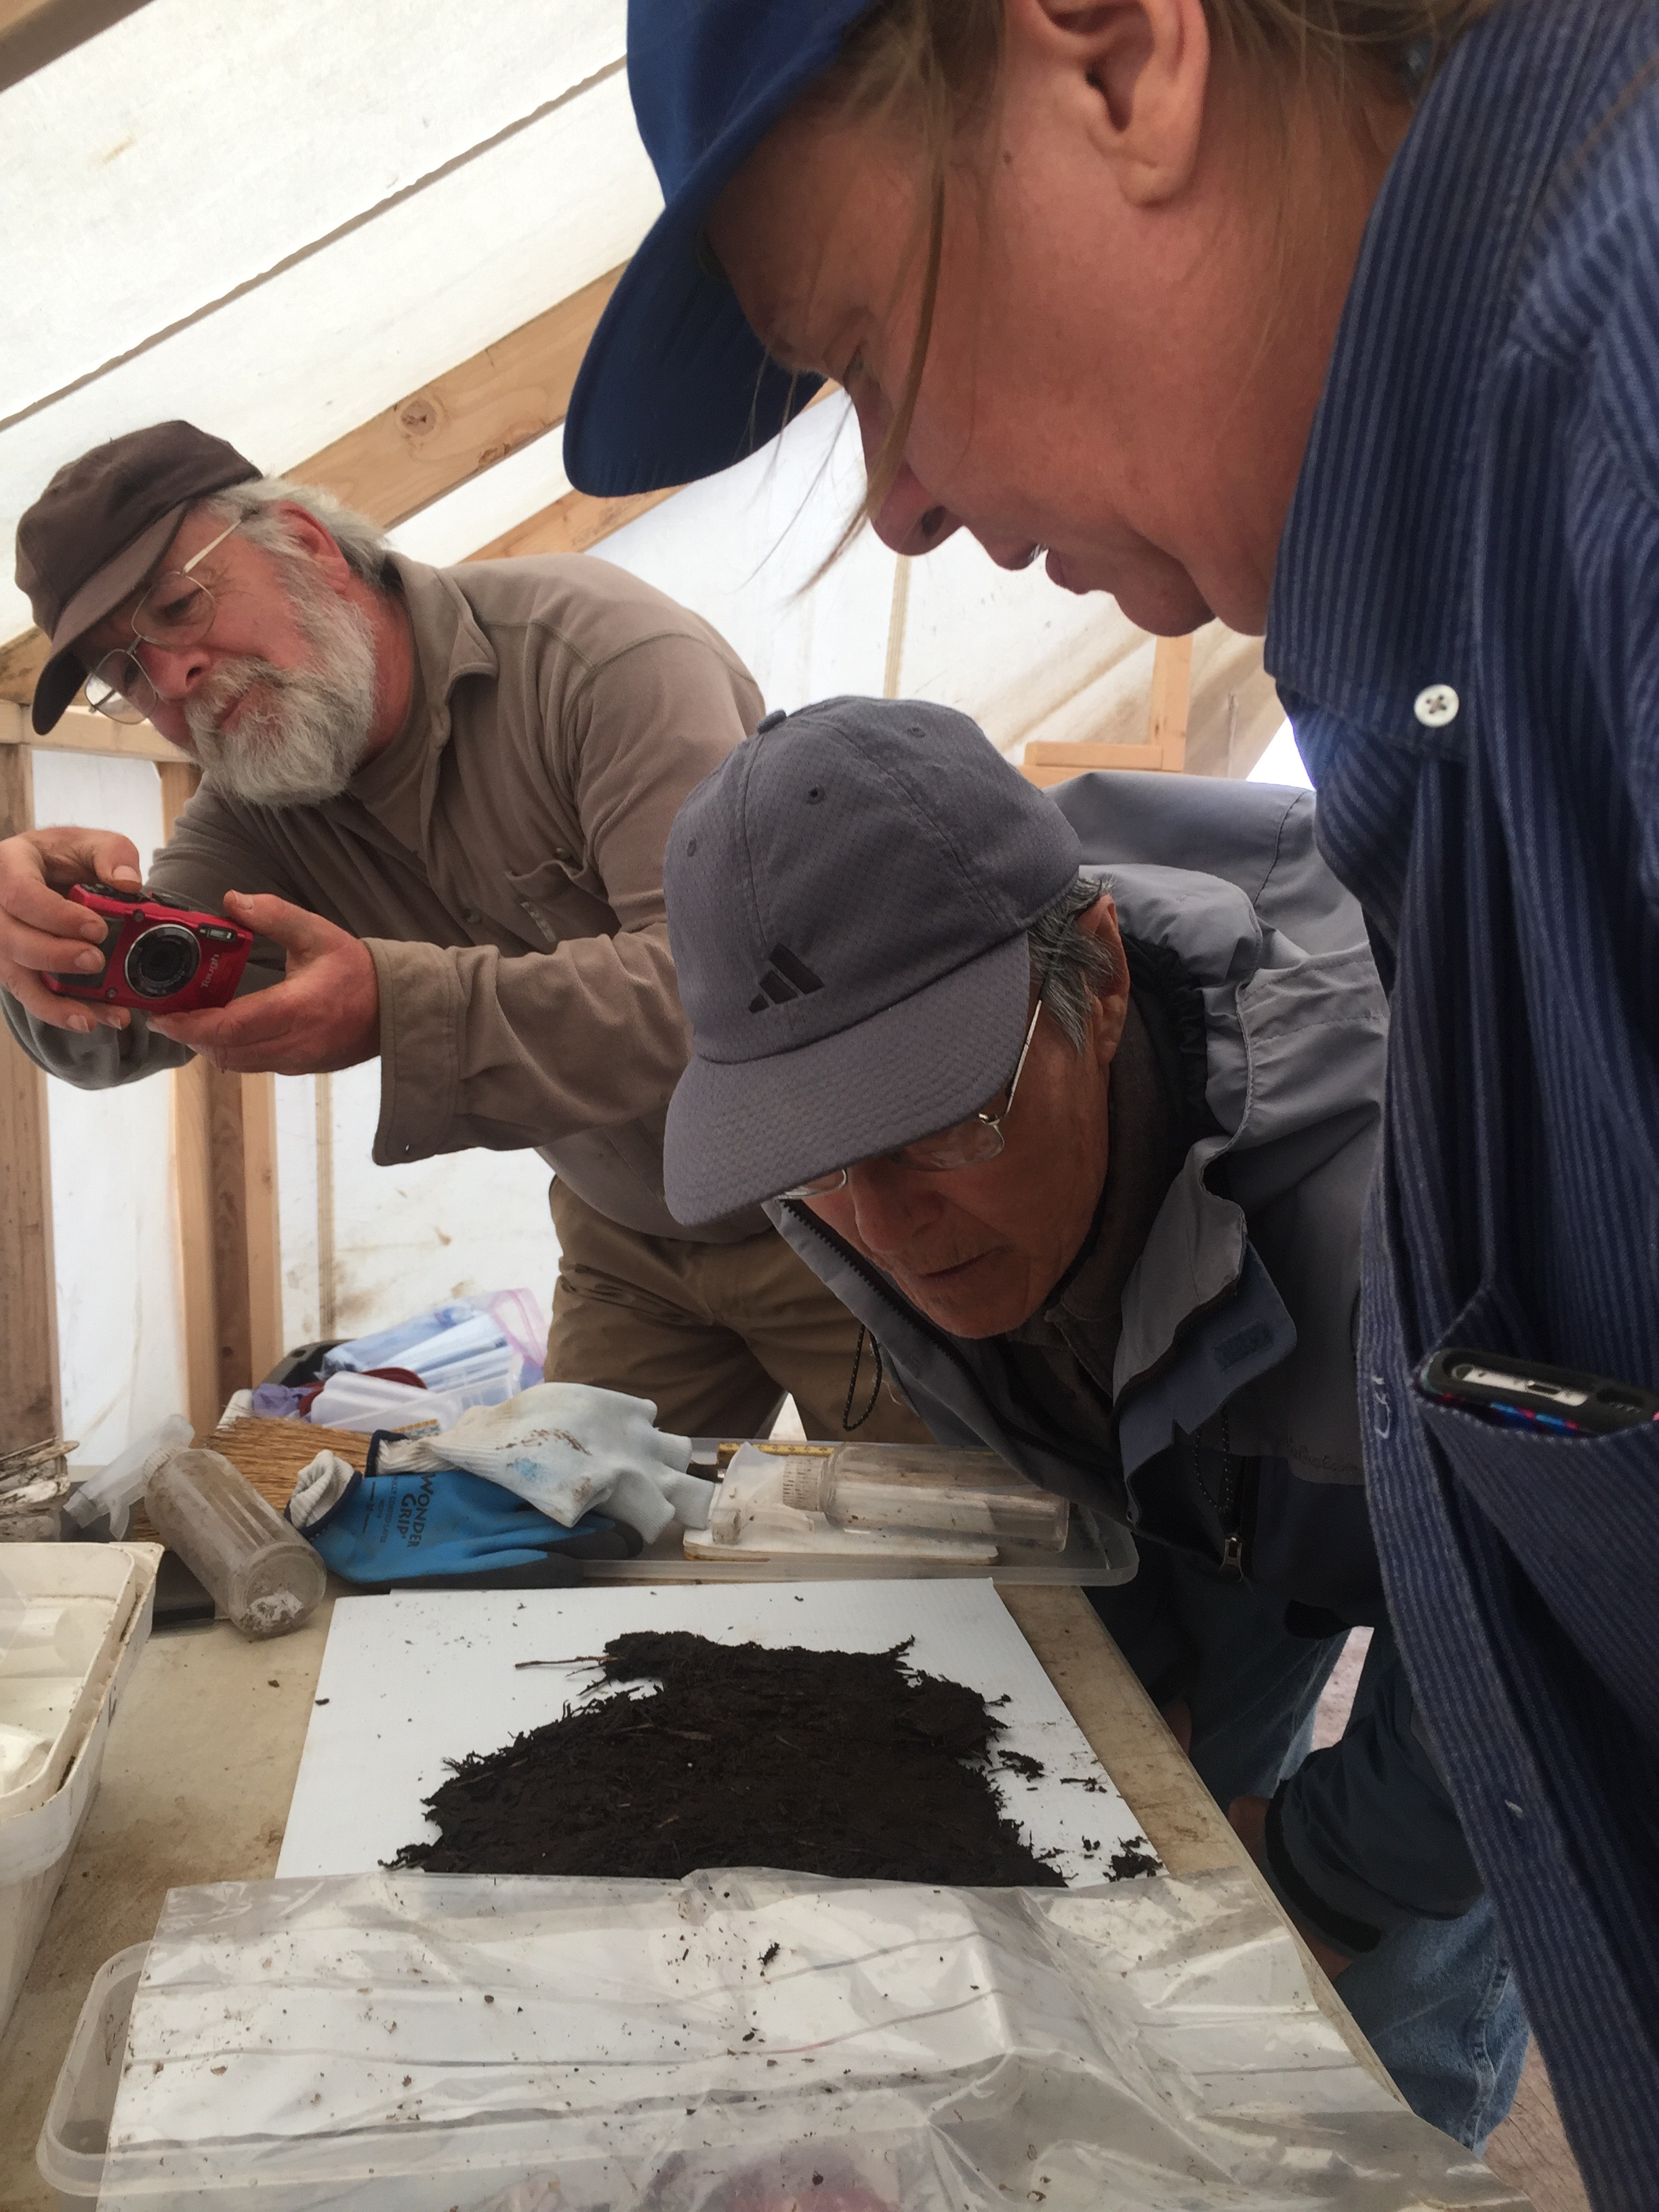 Rick Knecht and John Smith and Tricia examining this woven basket we found while removing a house floor layer.